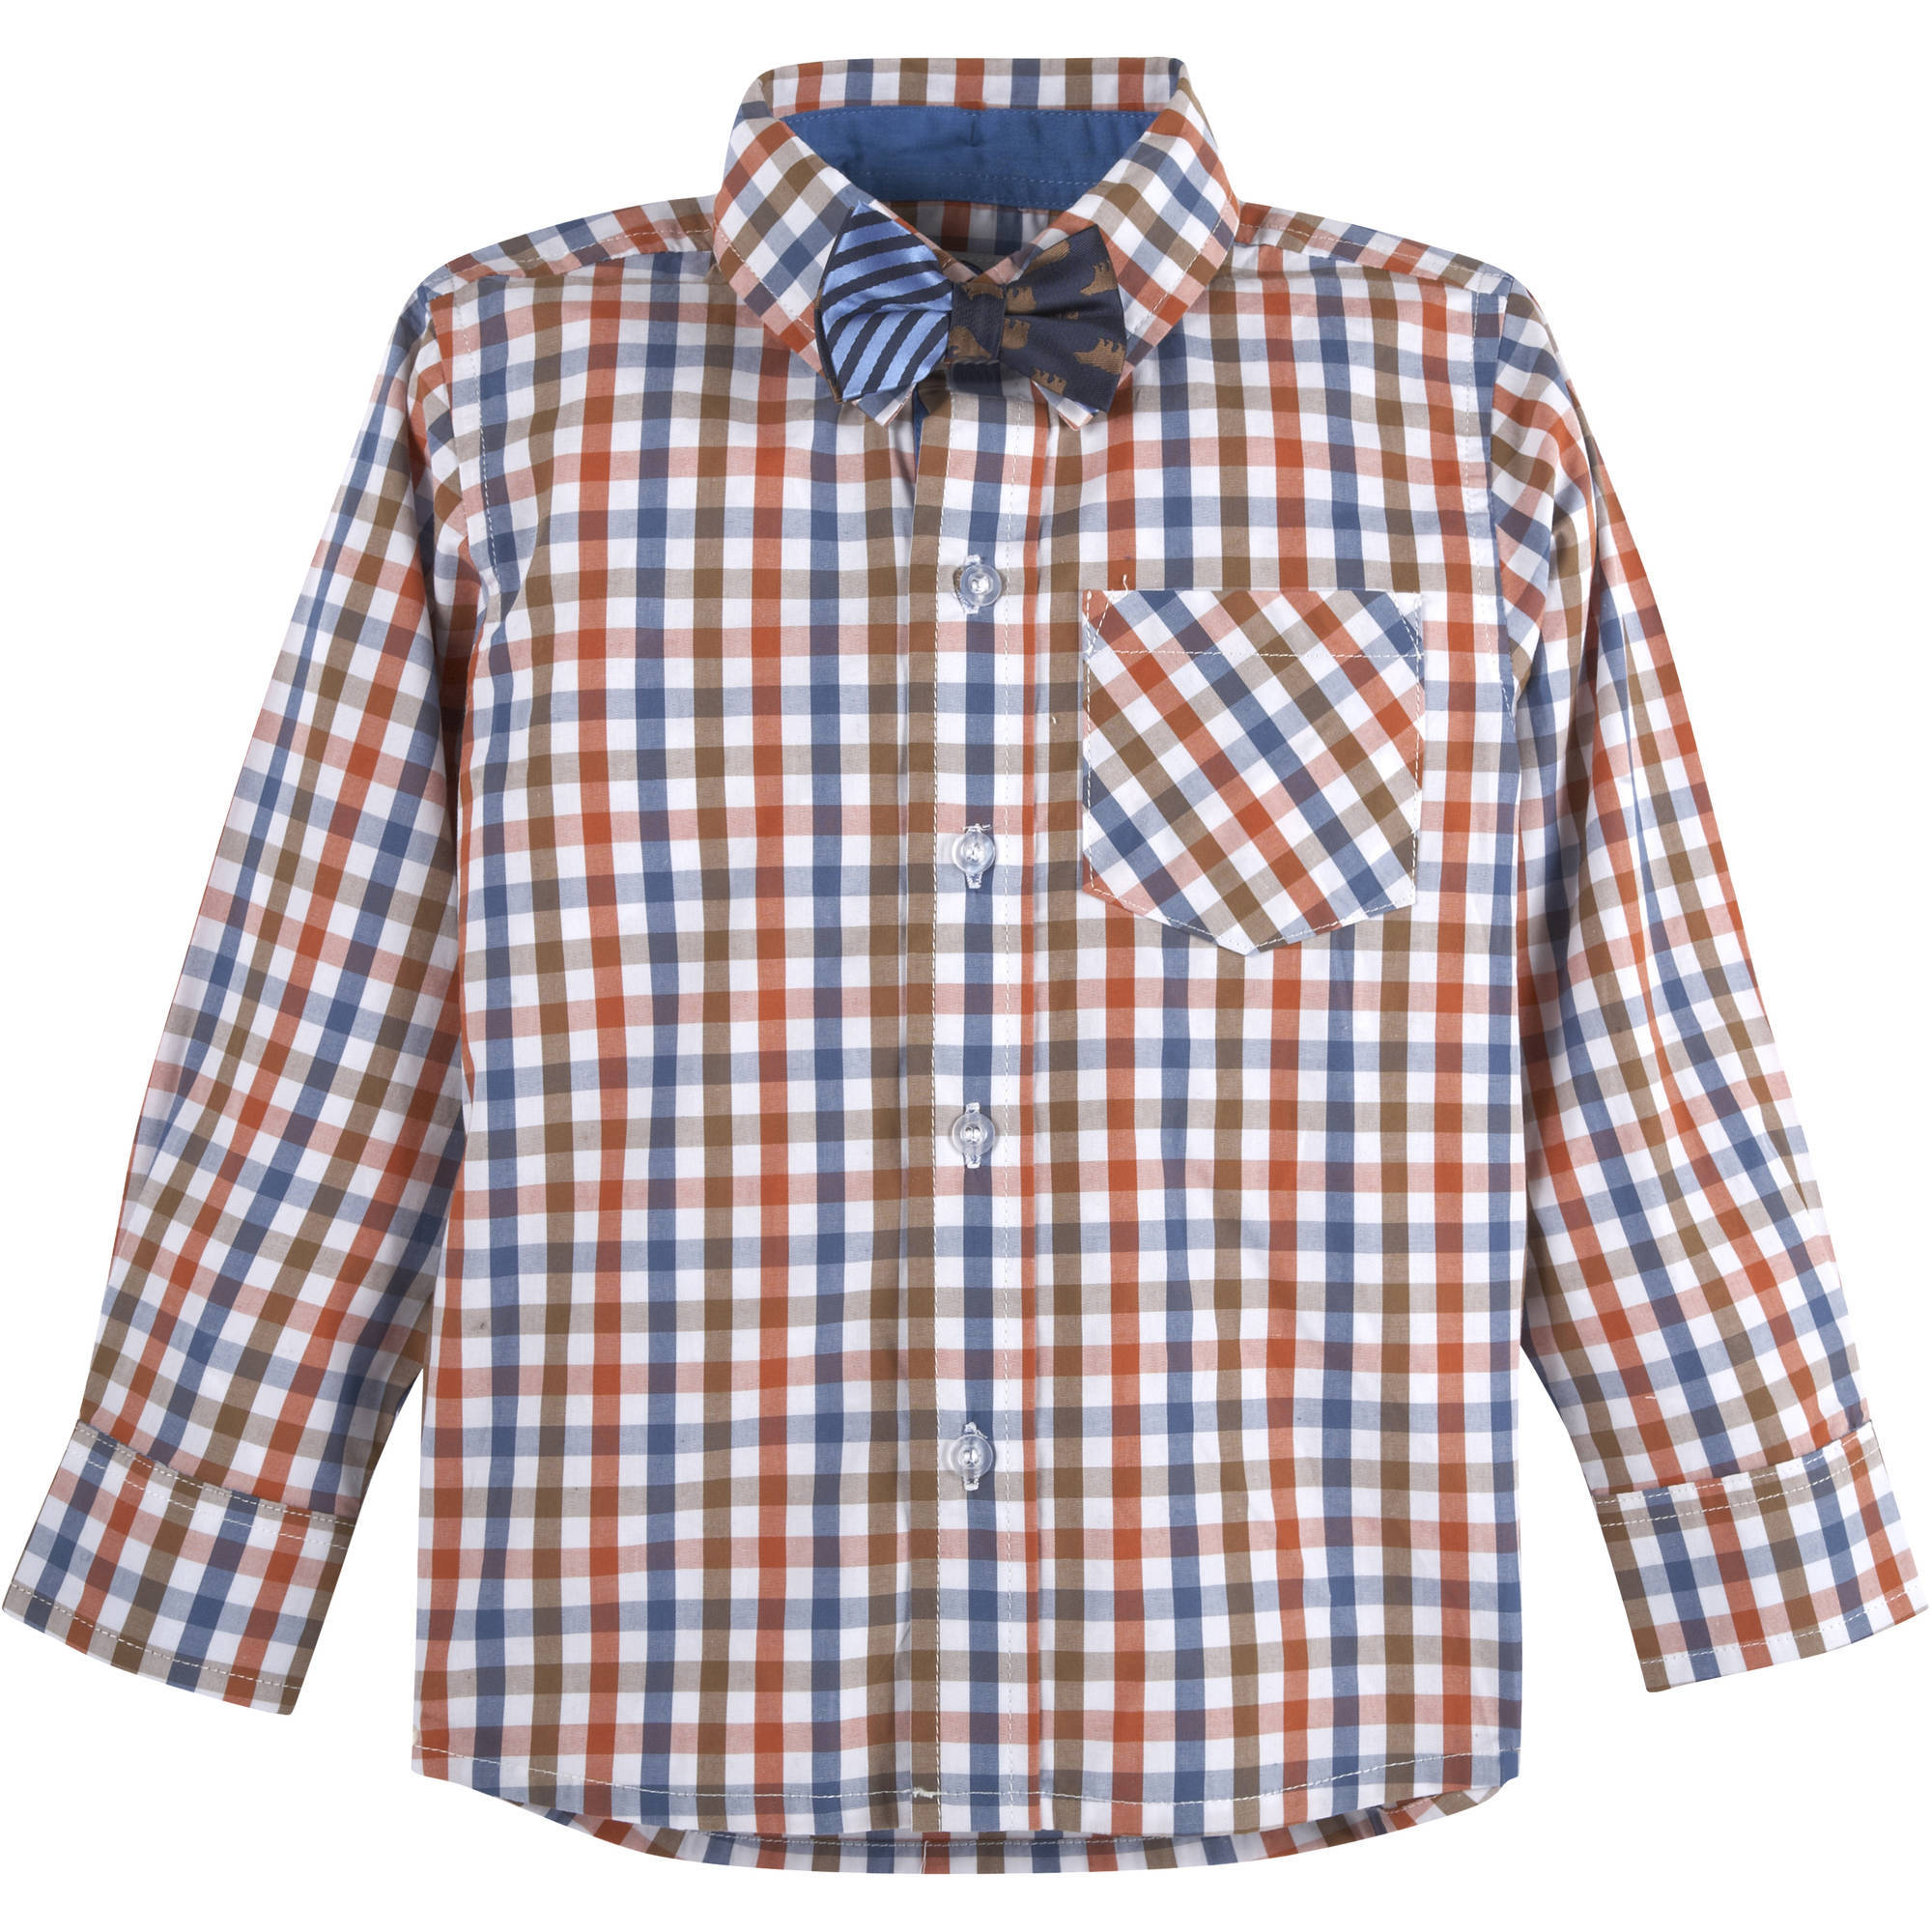 G-Cutee Baby Toddler Boy Woven Gingham Shirt w/ Bear & Stripes Bowtie Set